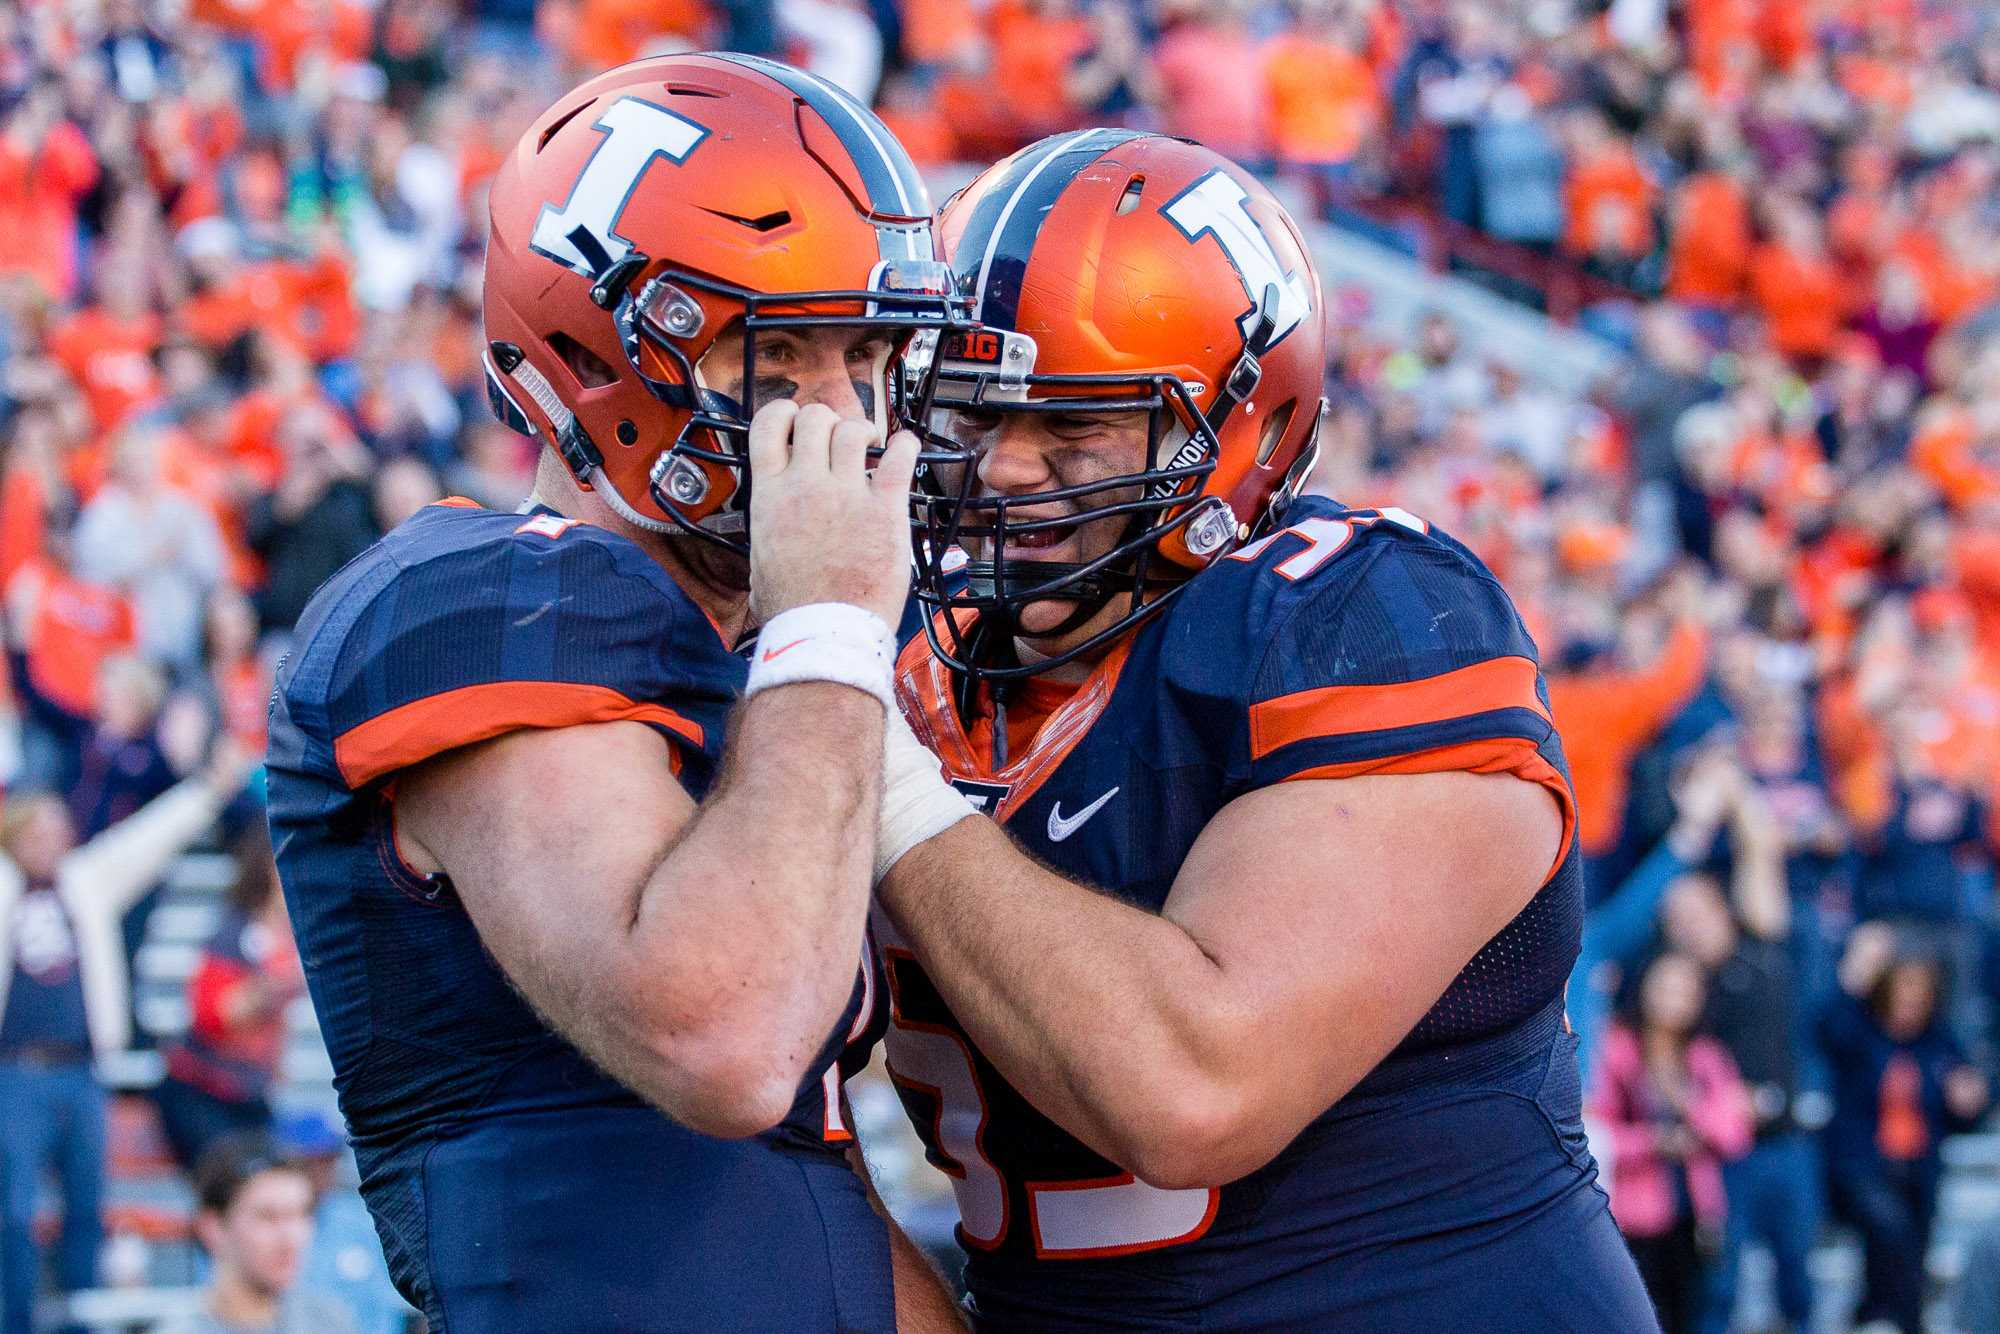 Illinois offensive lineman Nick Allegretti (53) grabs backup quarterback Chayce Crouch (7) after he scored a touchdown in the game against Purdue at Memorial Stadium on Oct. 8. The Illini lost 34-31.